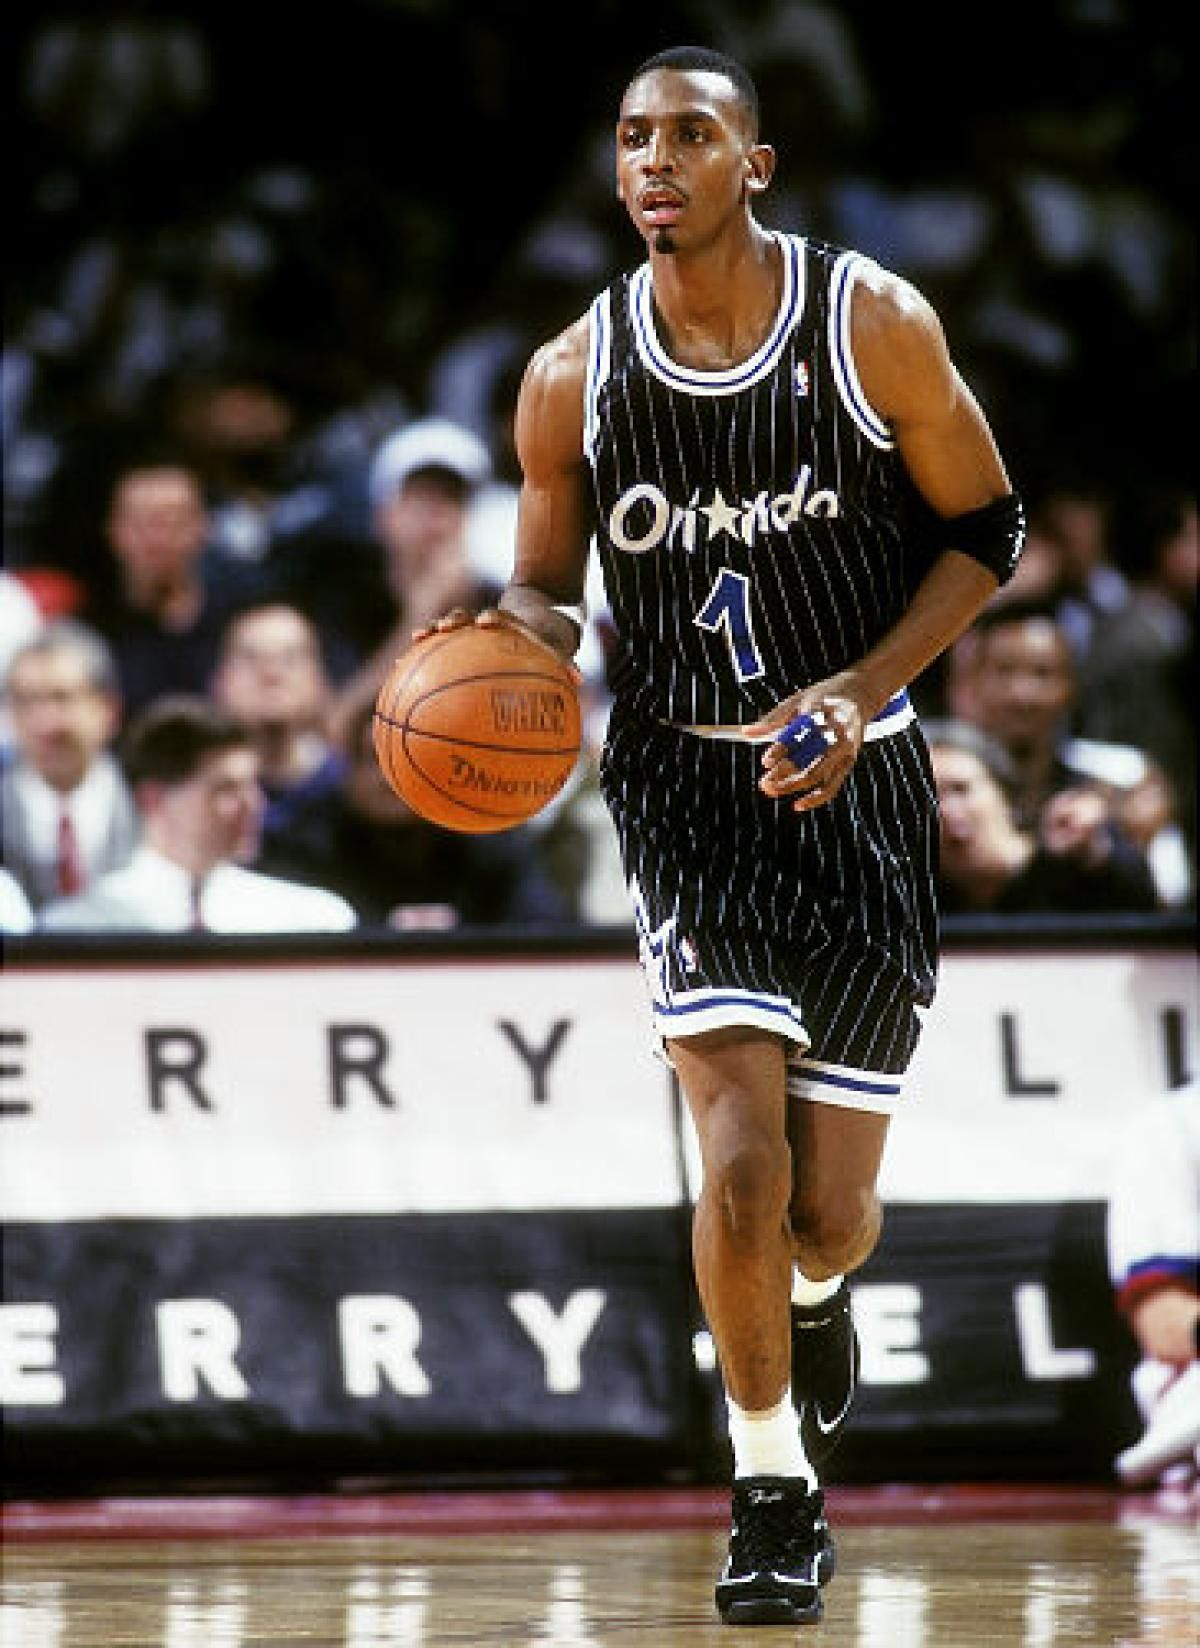 ORLANDO MAGIC Kids growing up in the late '90s flocked to